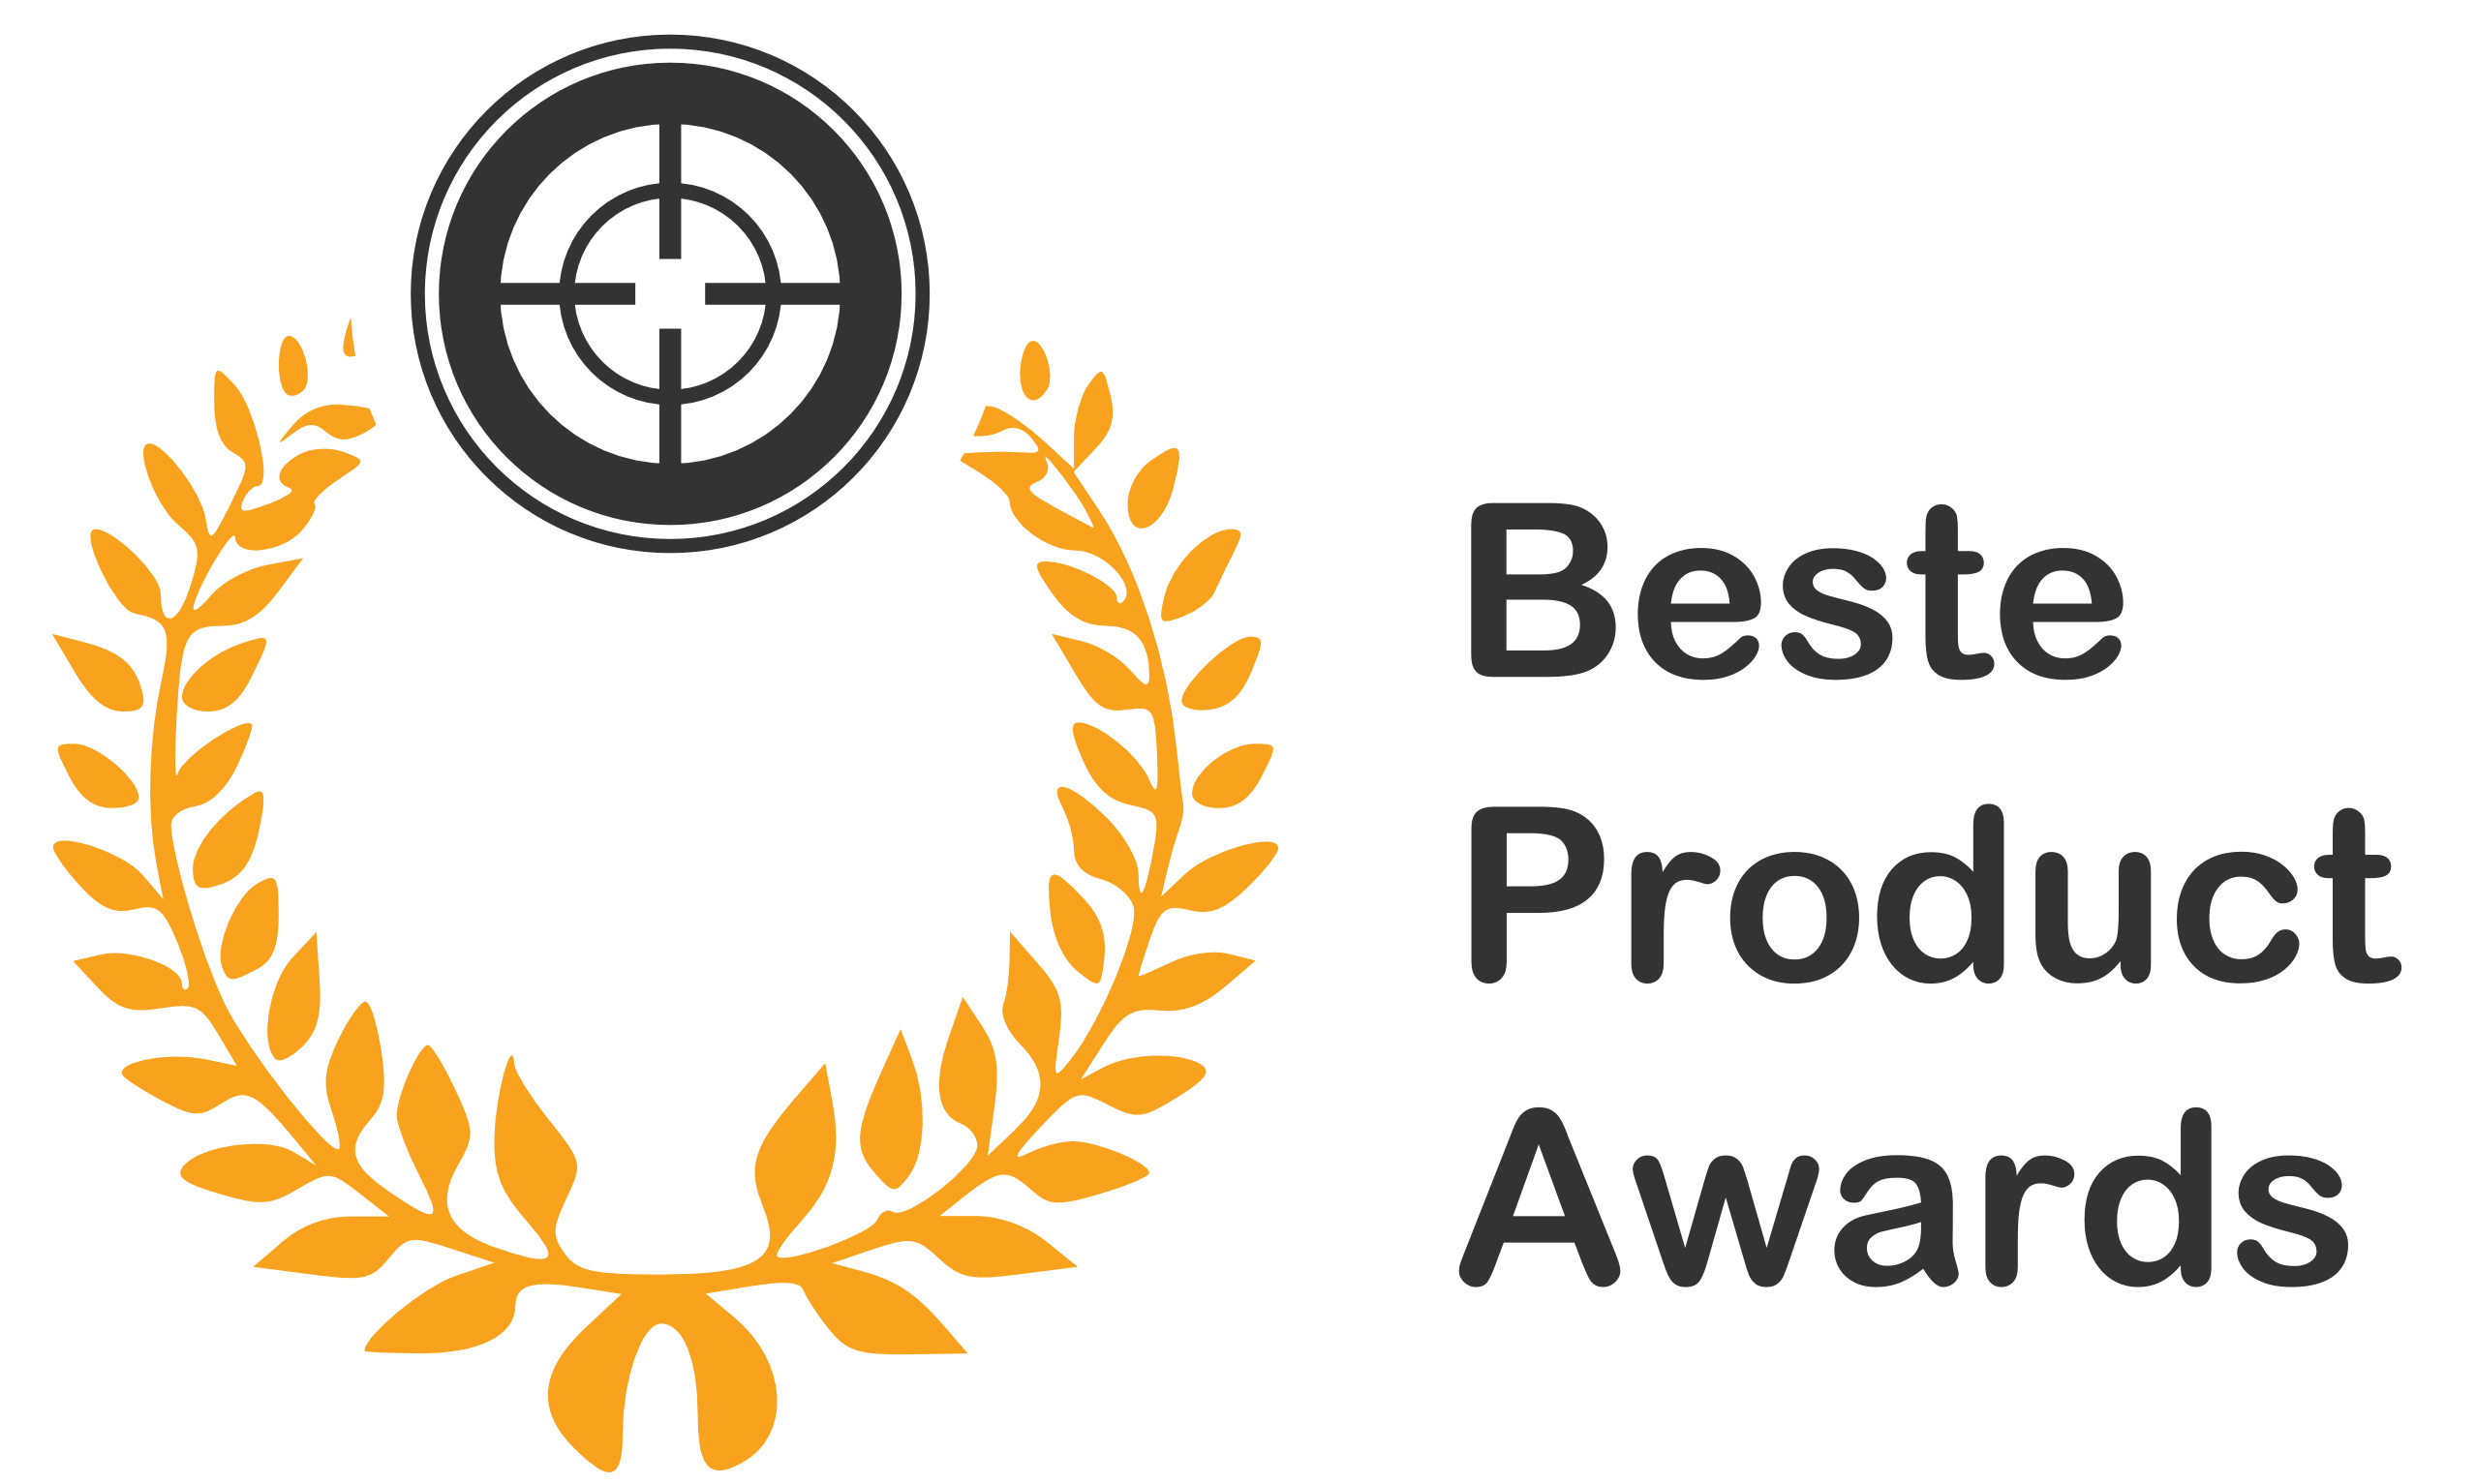 Beste Product Award Logo